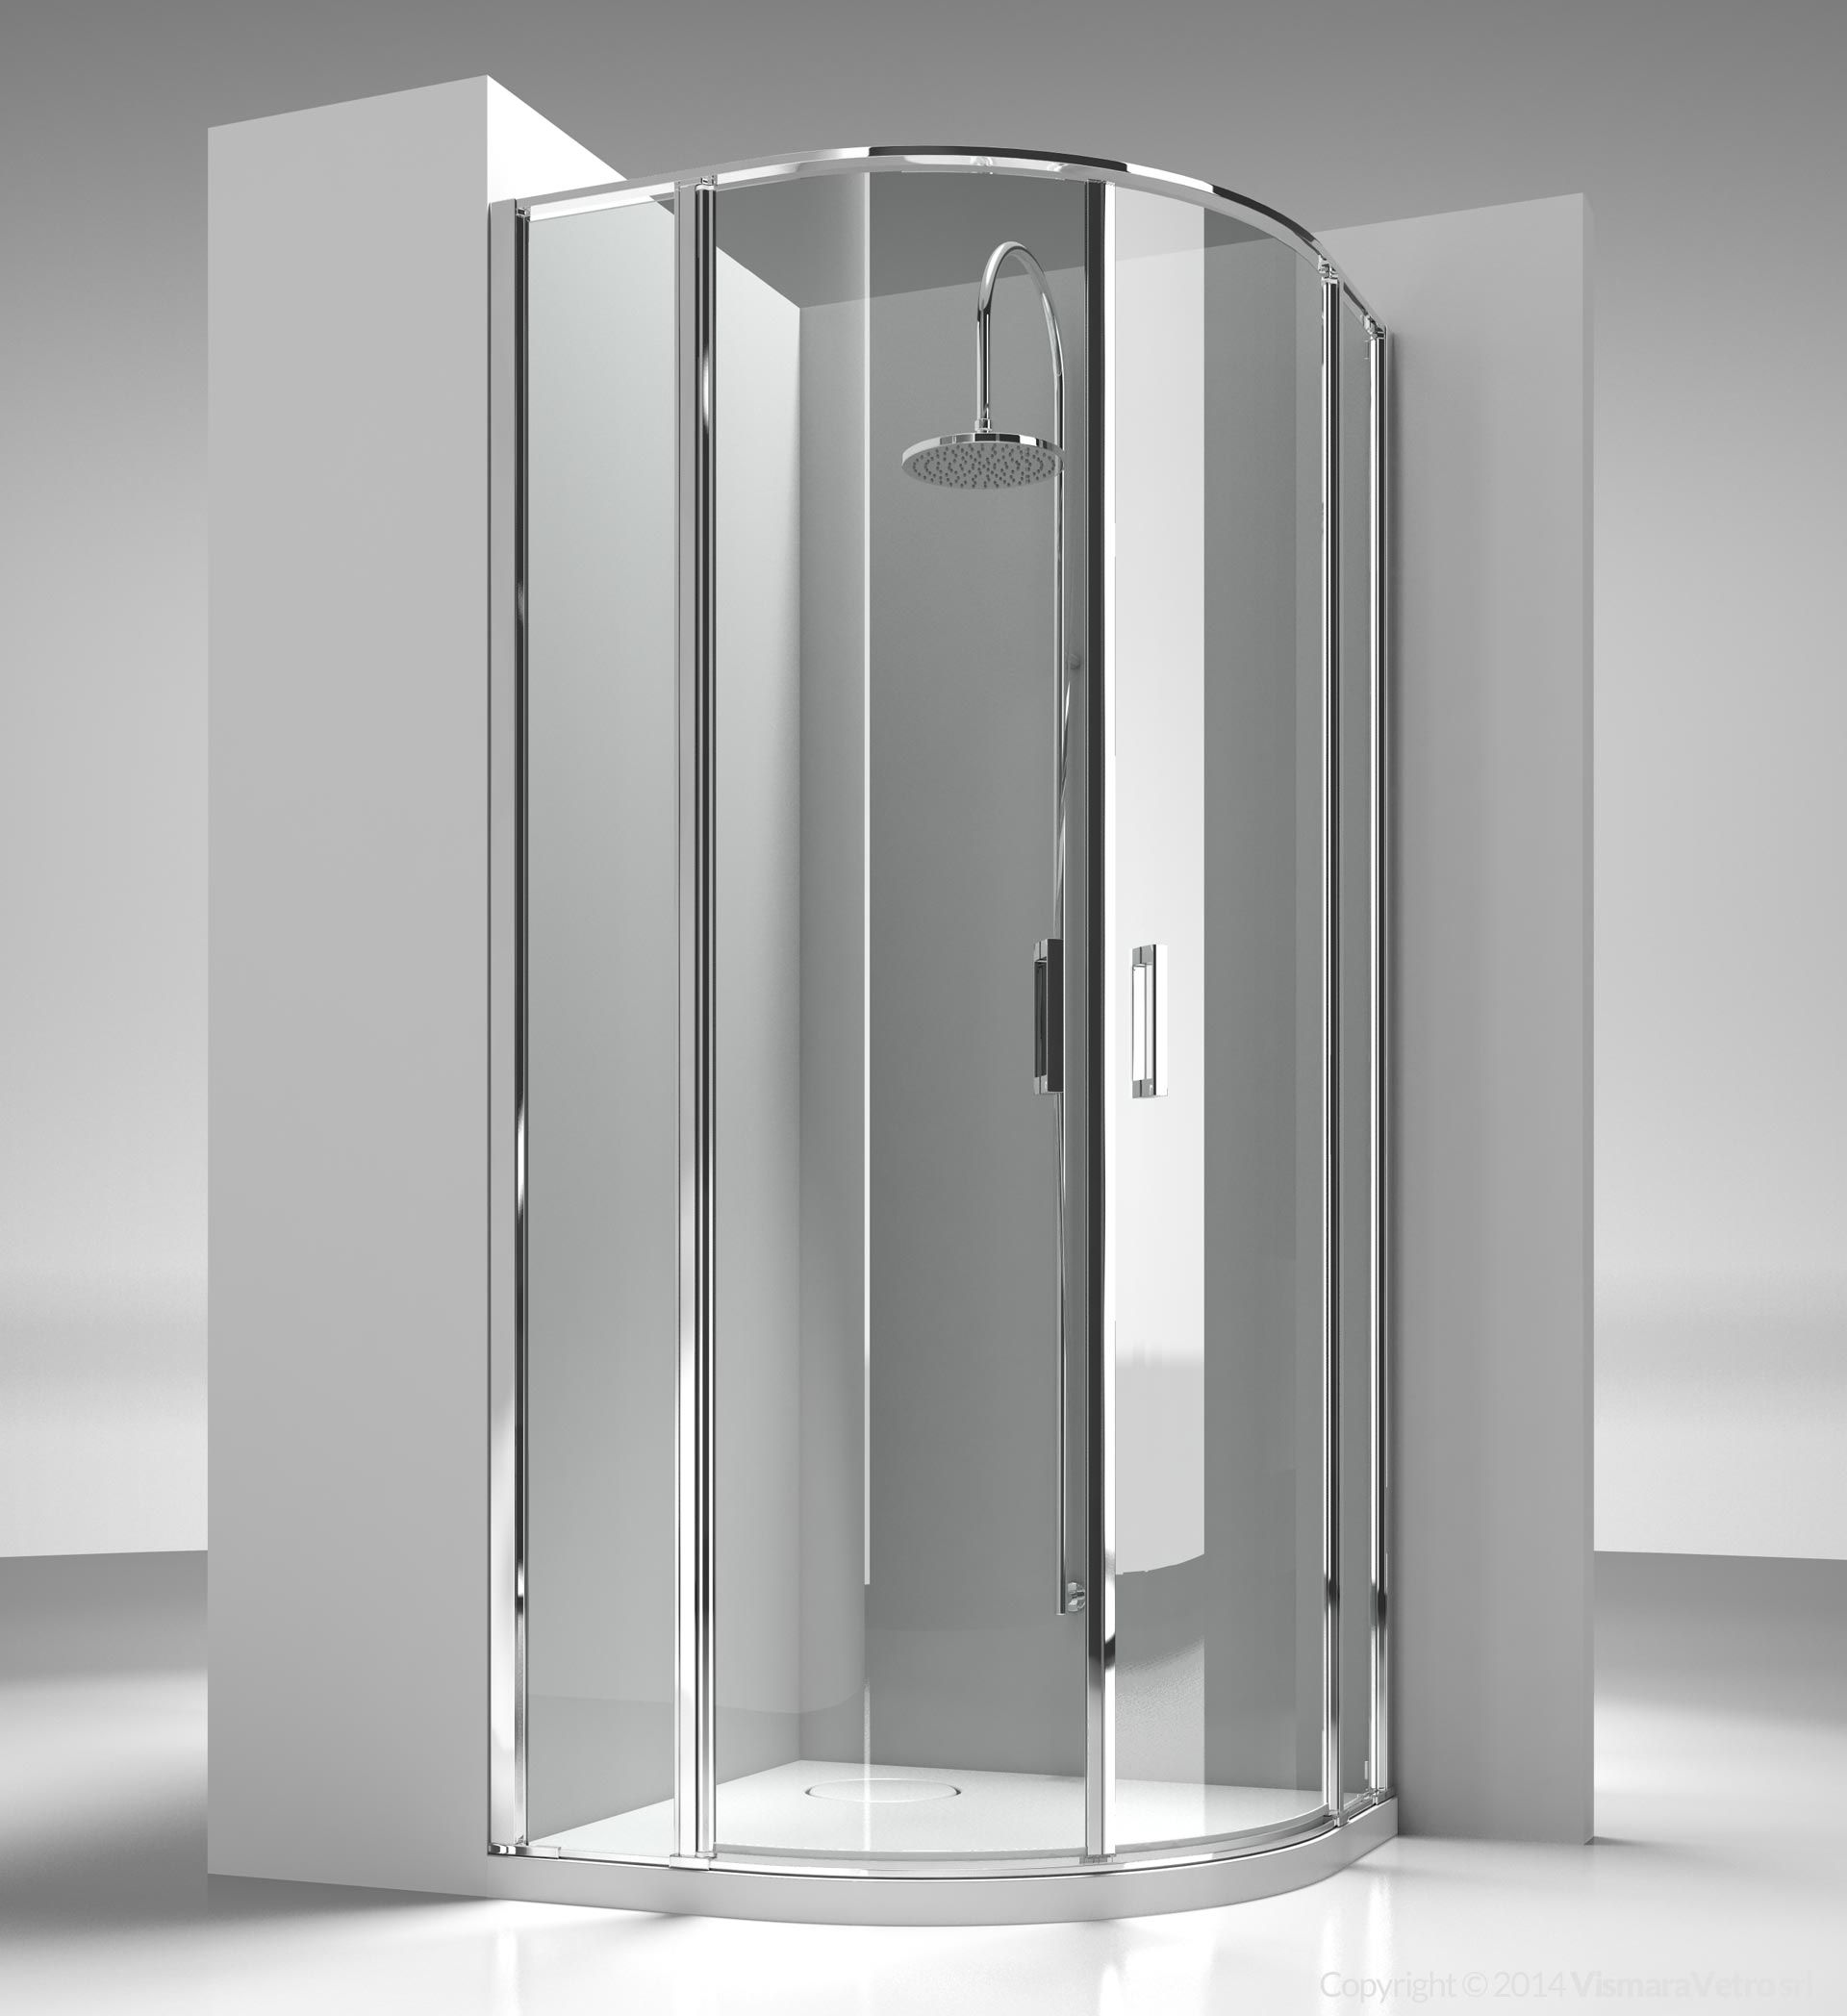 Frameless Shower Enclosure For Rounded Tray R55 Cm With Two 180